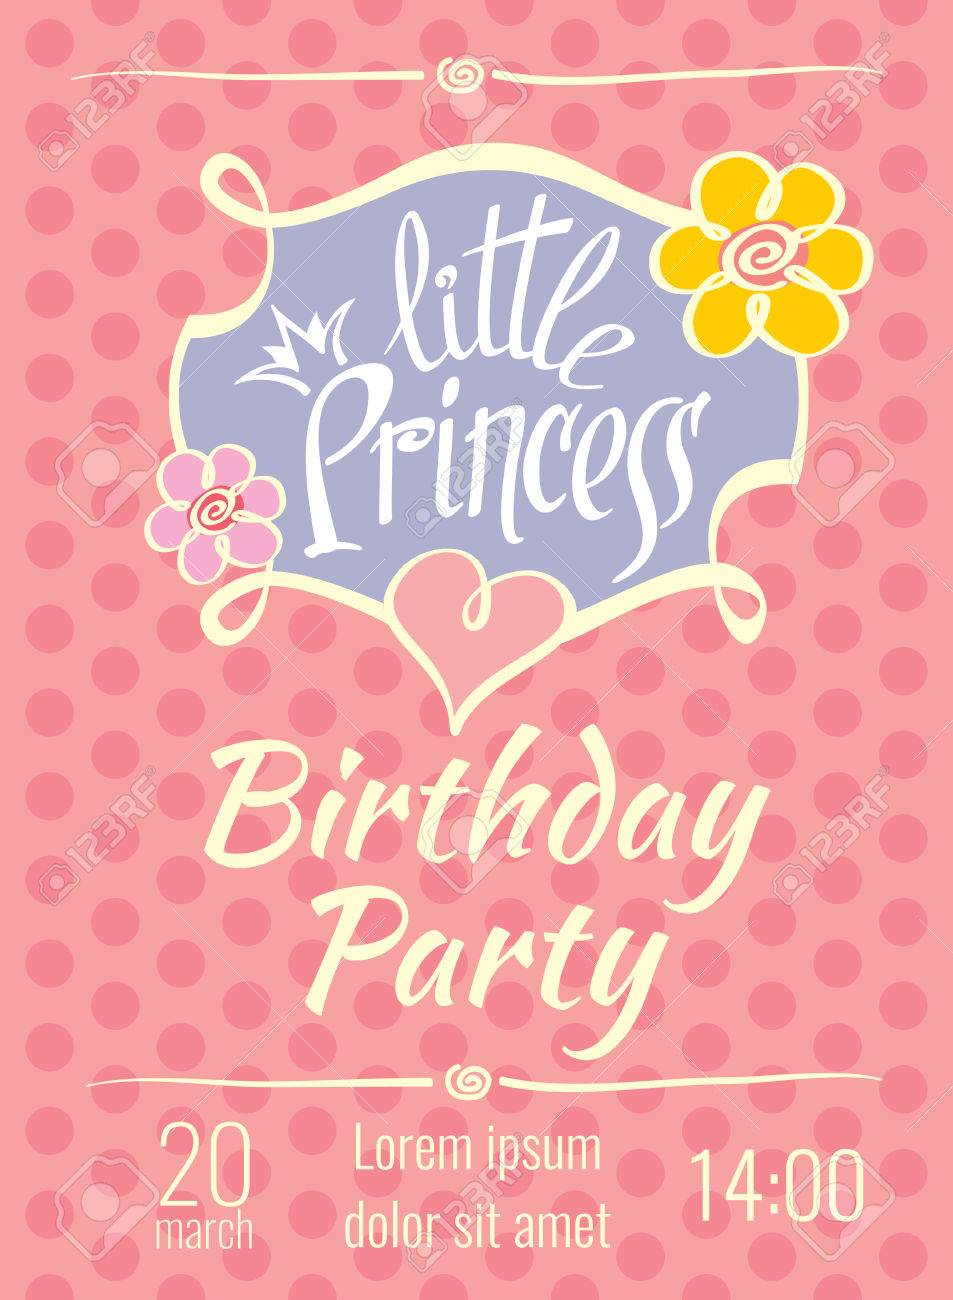 little princess birthday party vector poster or invitation card